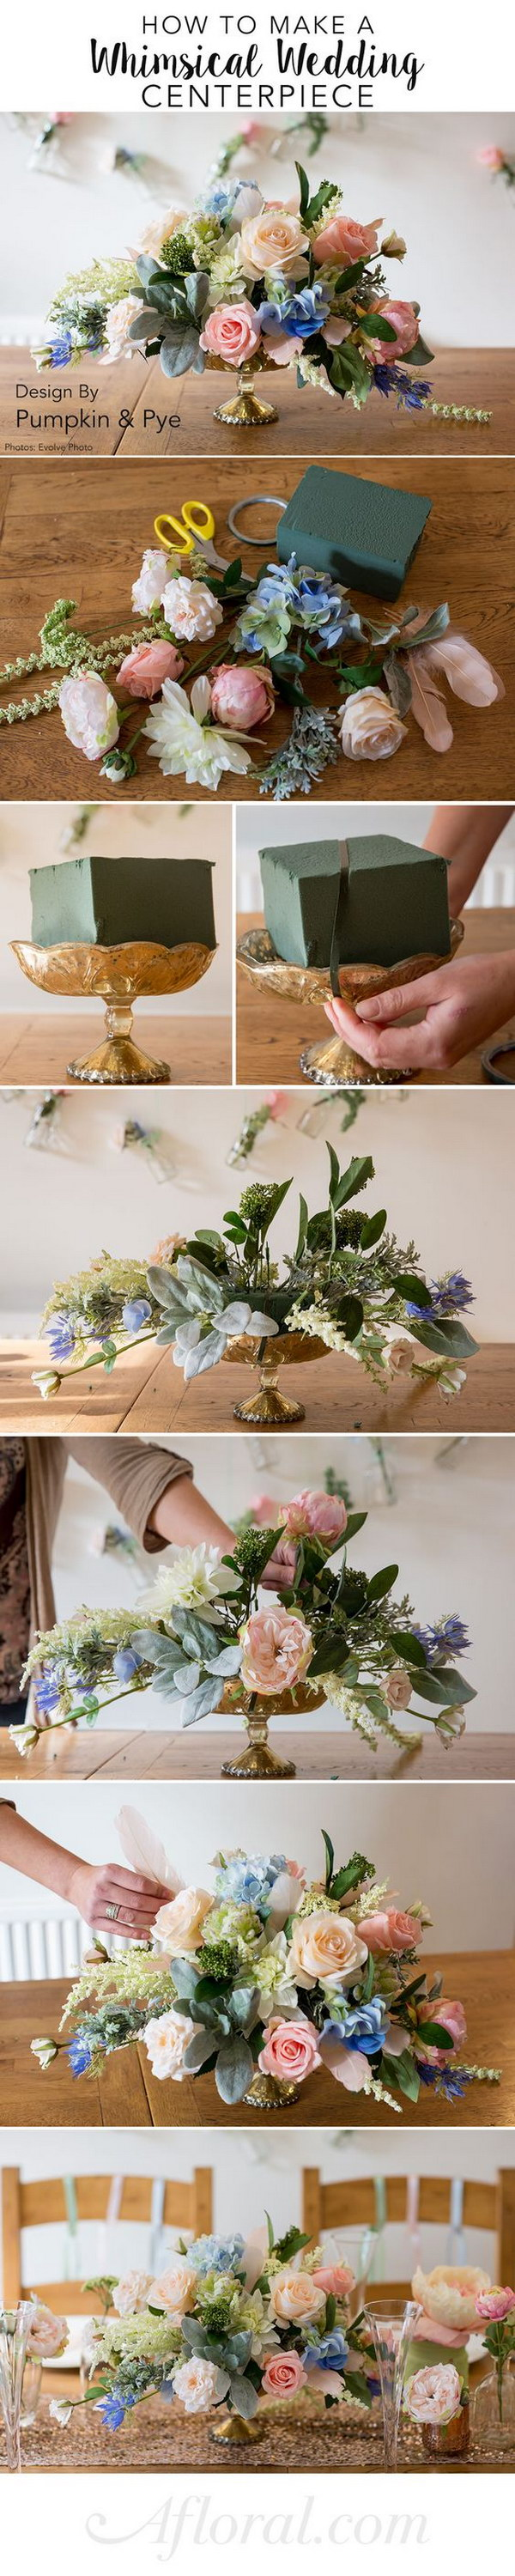 DIY Floral Centerpiece.